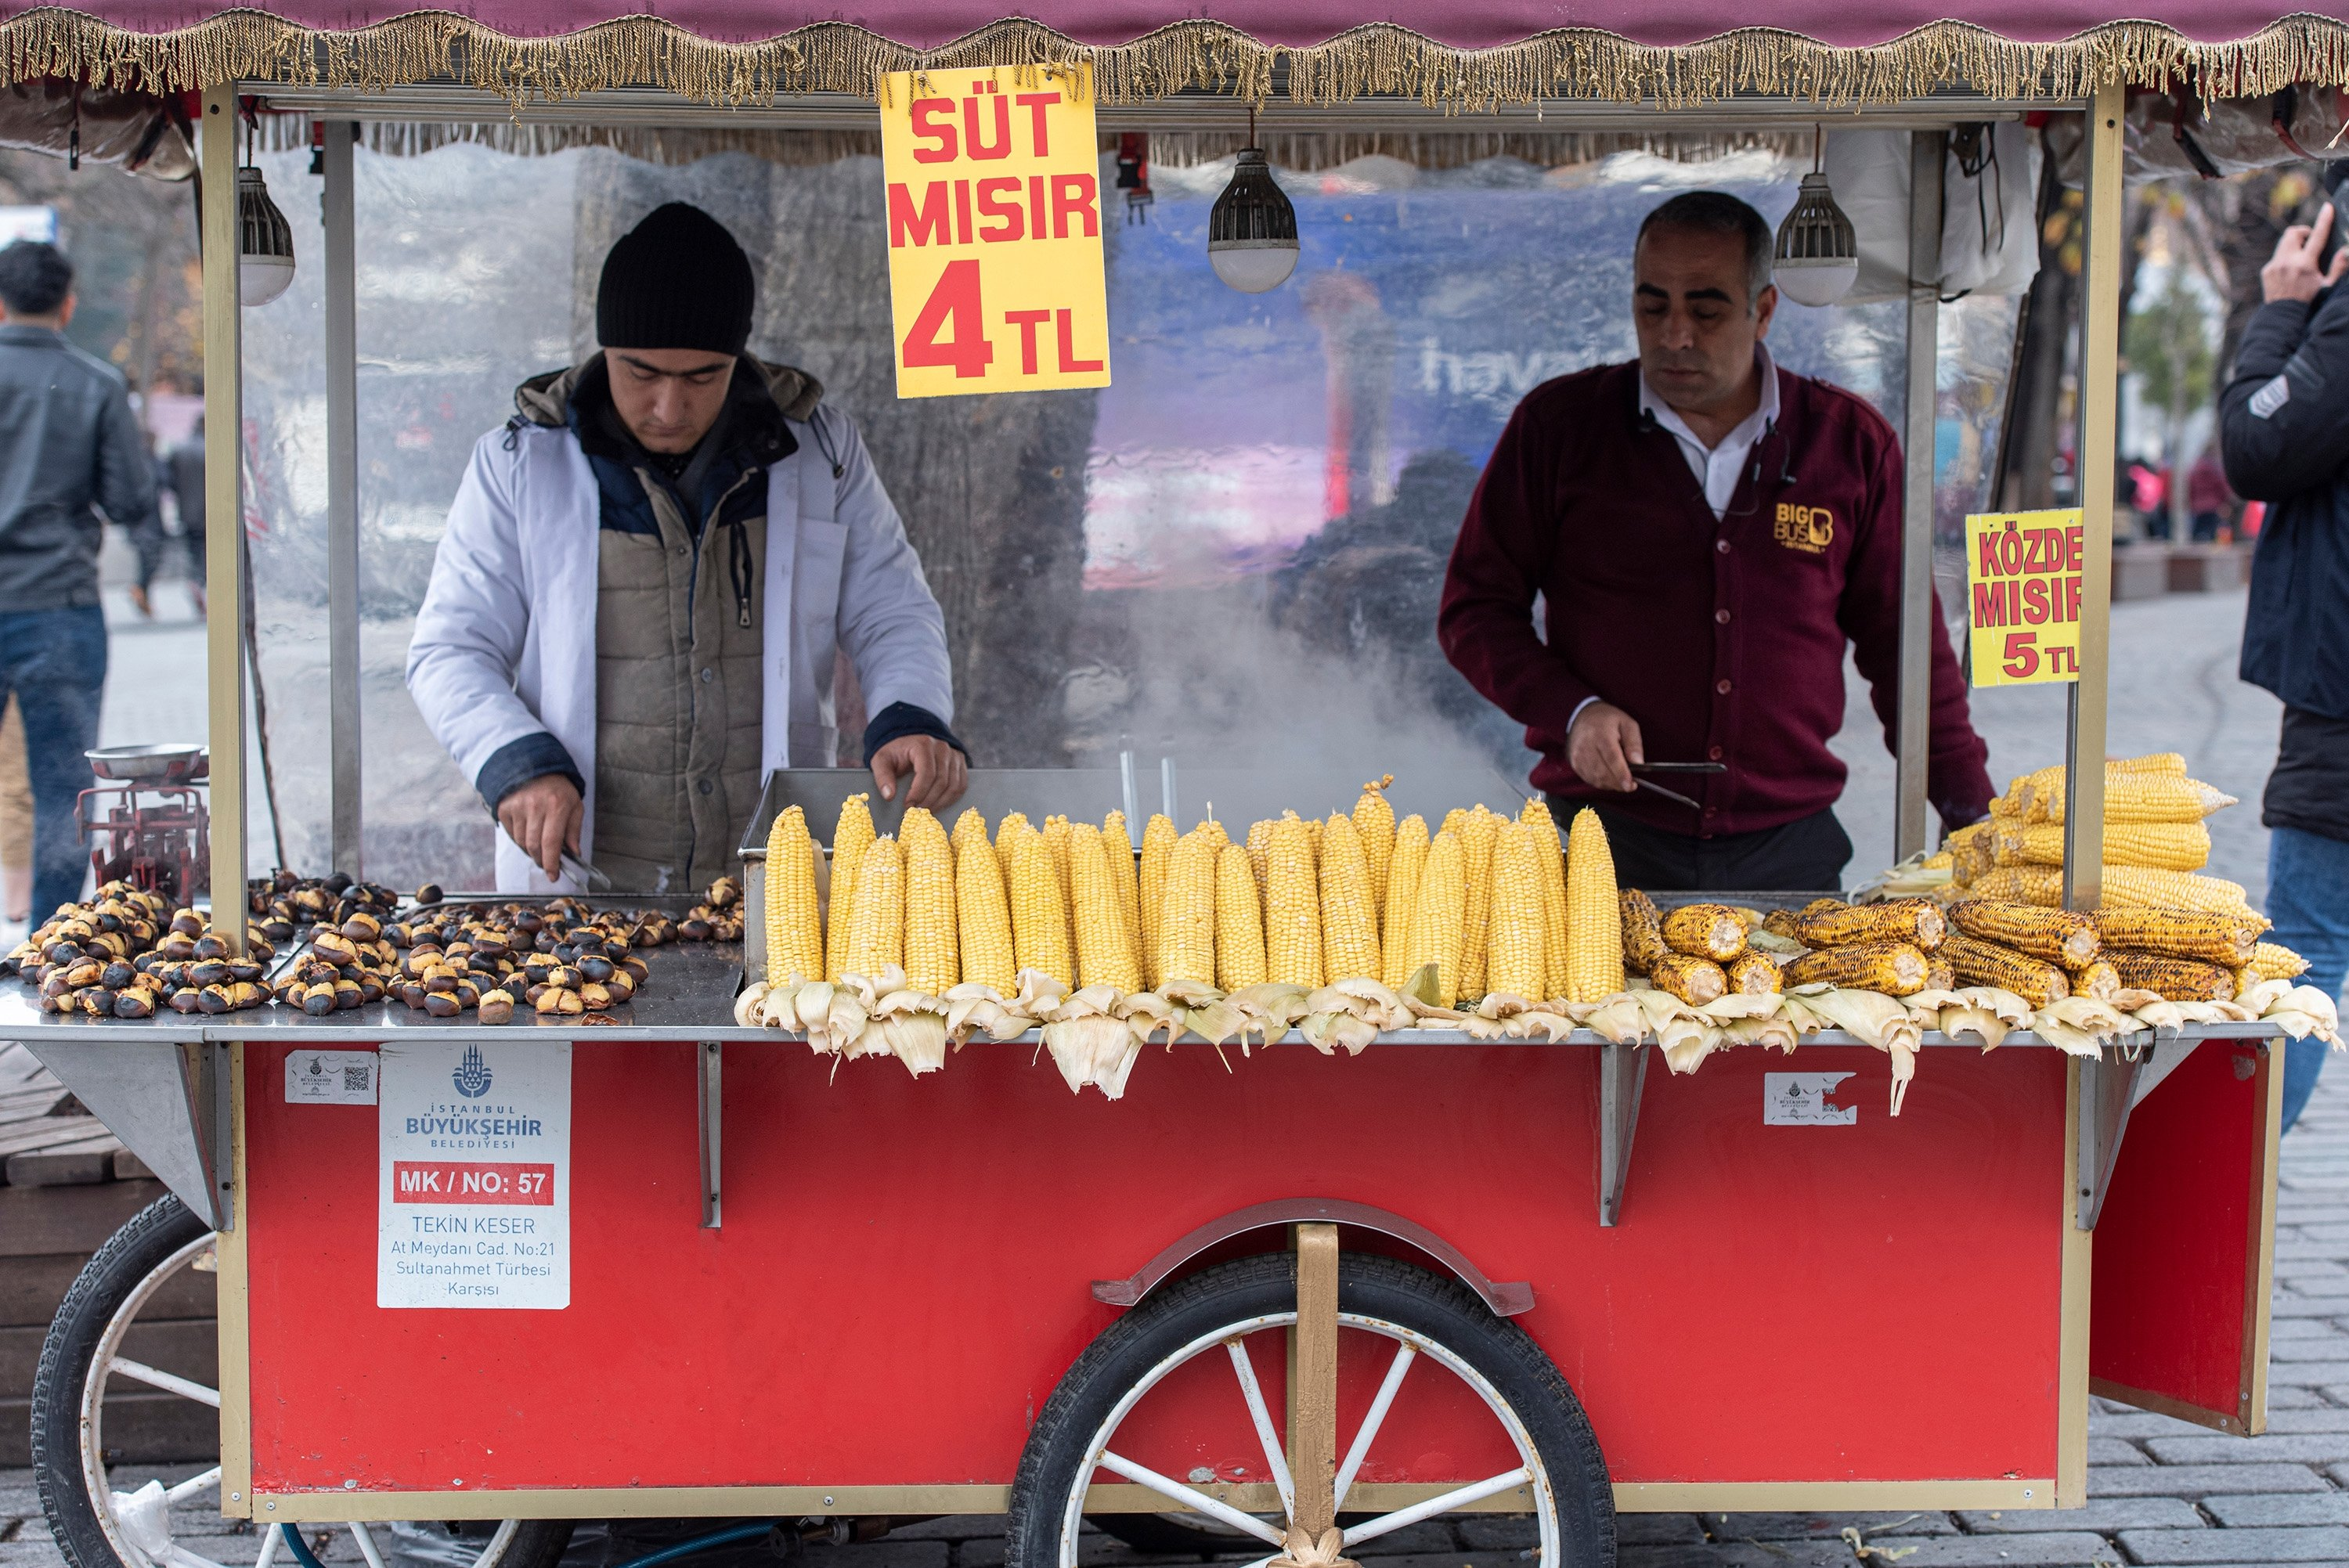 Street vendors selling roasted chestnuts in paper cones and roasted corn on the cob is a common sight in Turkey like this photo taken in Istanbul's Sultanahmet Square on Dec. 28, 2019. (Shutterstock Photo)